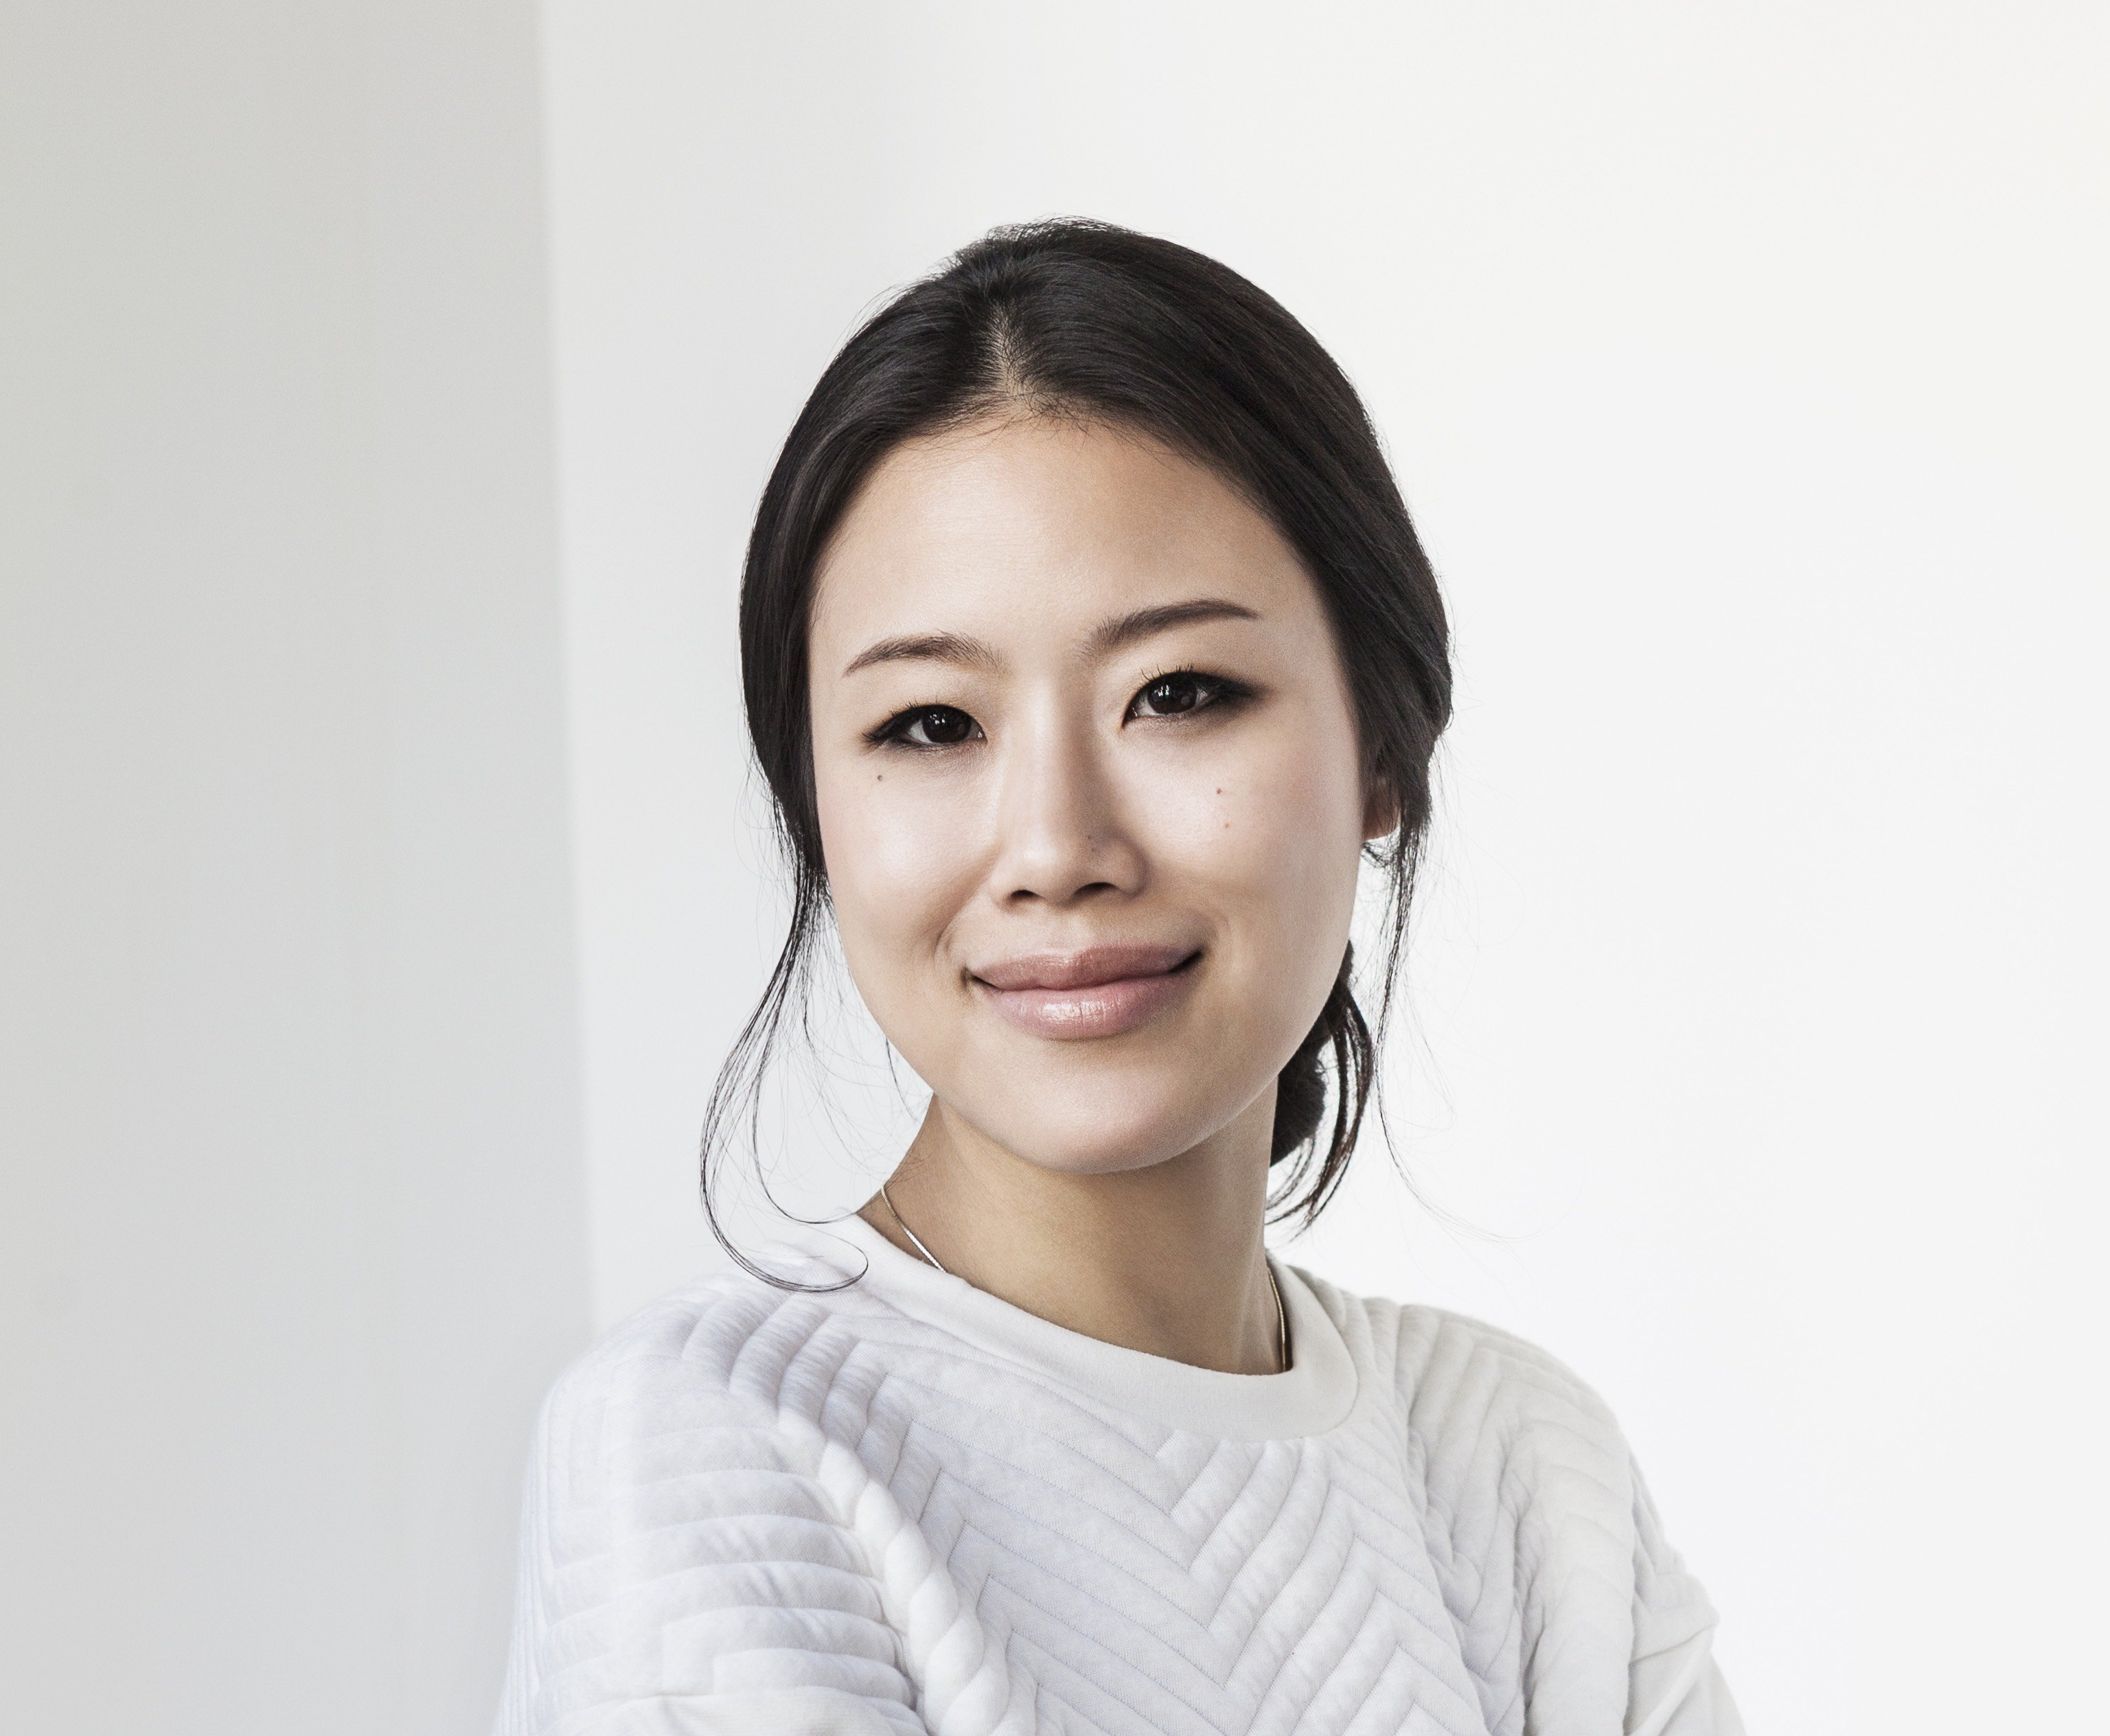 Peach & Lily founder Alicia Yoon